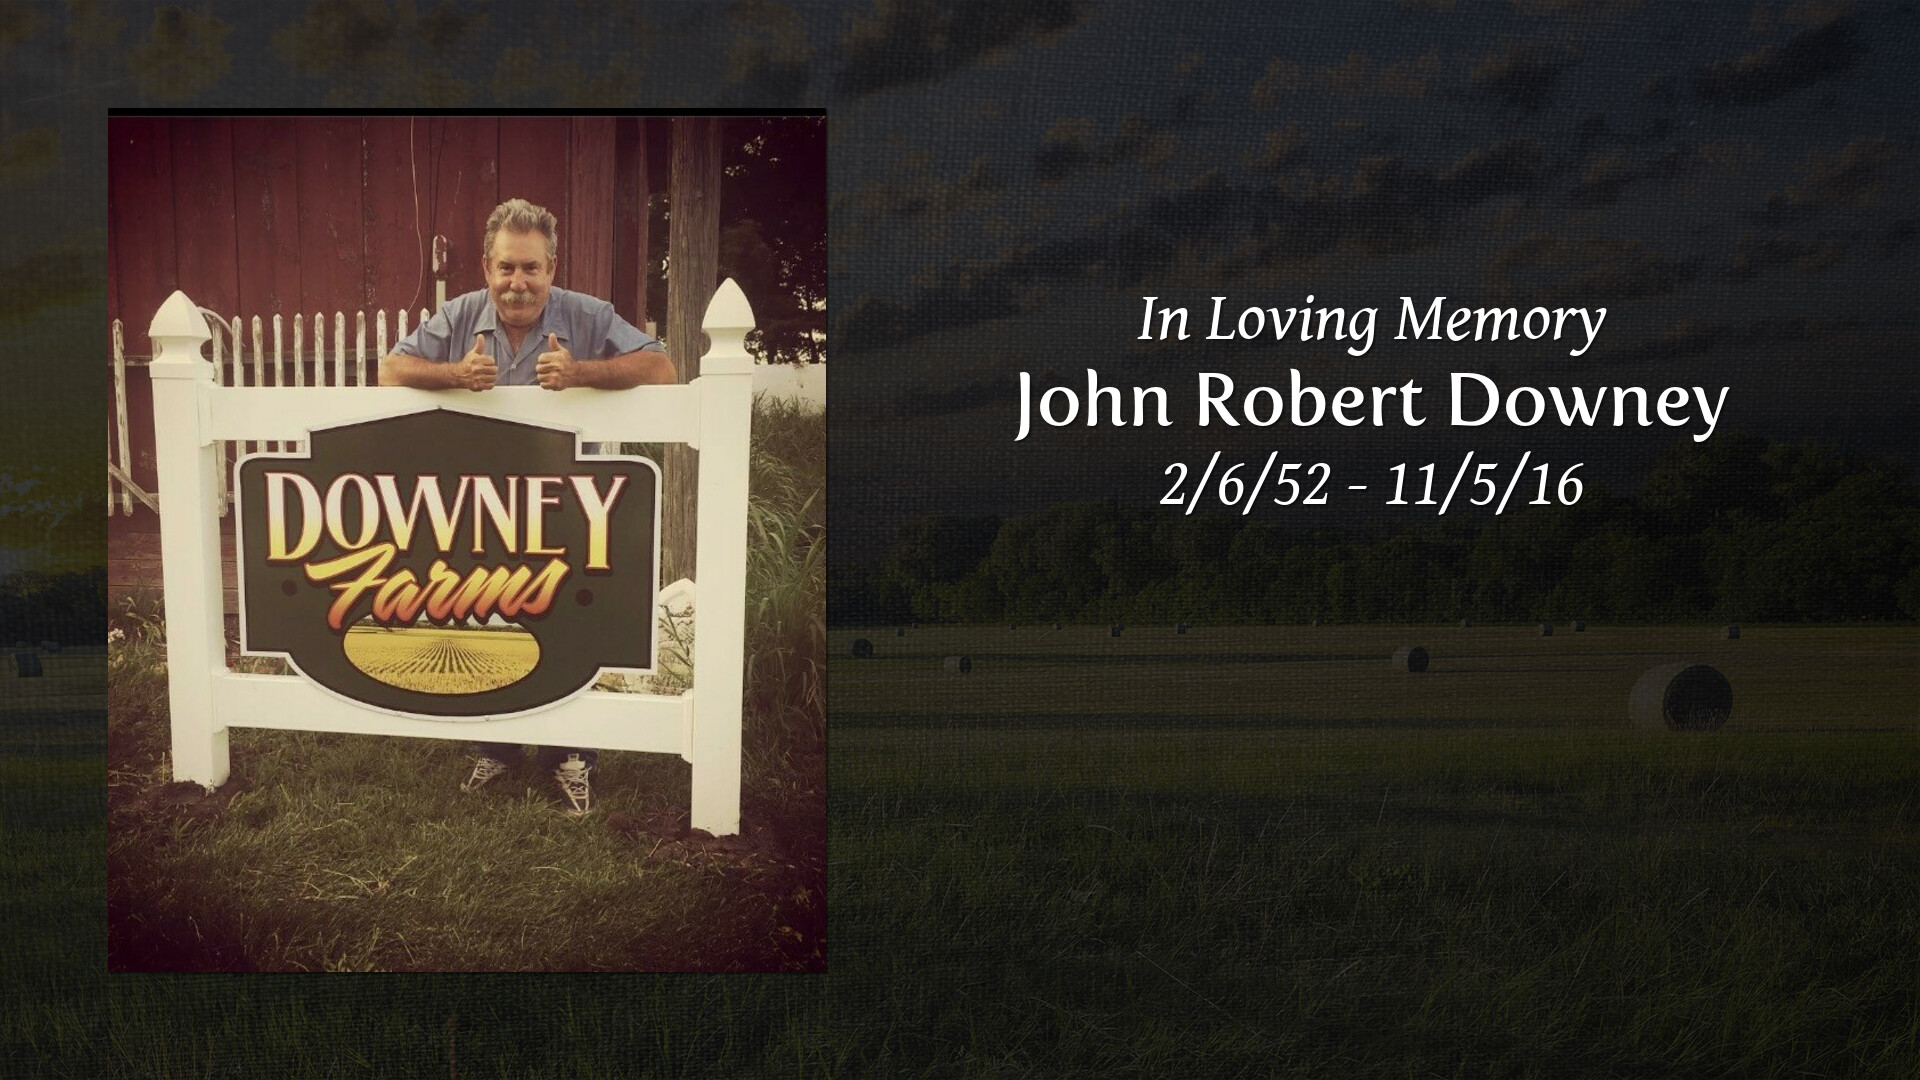 Obituary | John Robert Downey of Aledo, Illinois | Speer